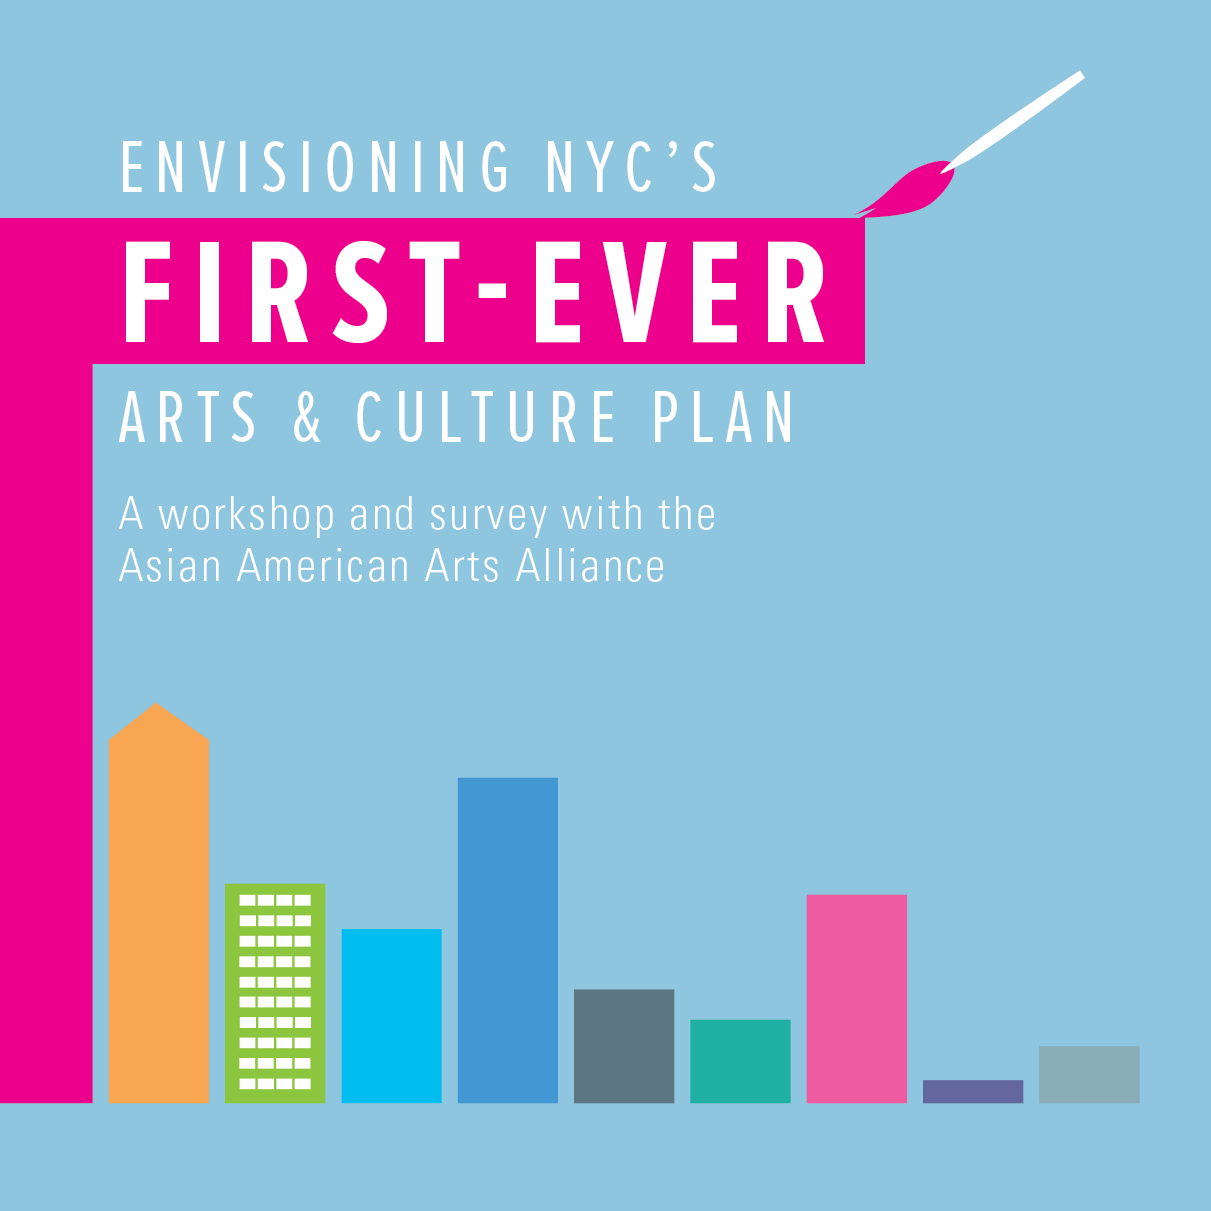 The Future of Arts & Culture in NYC